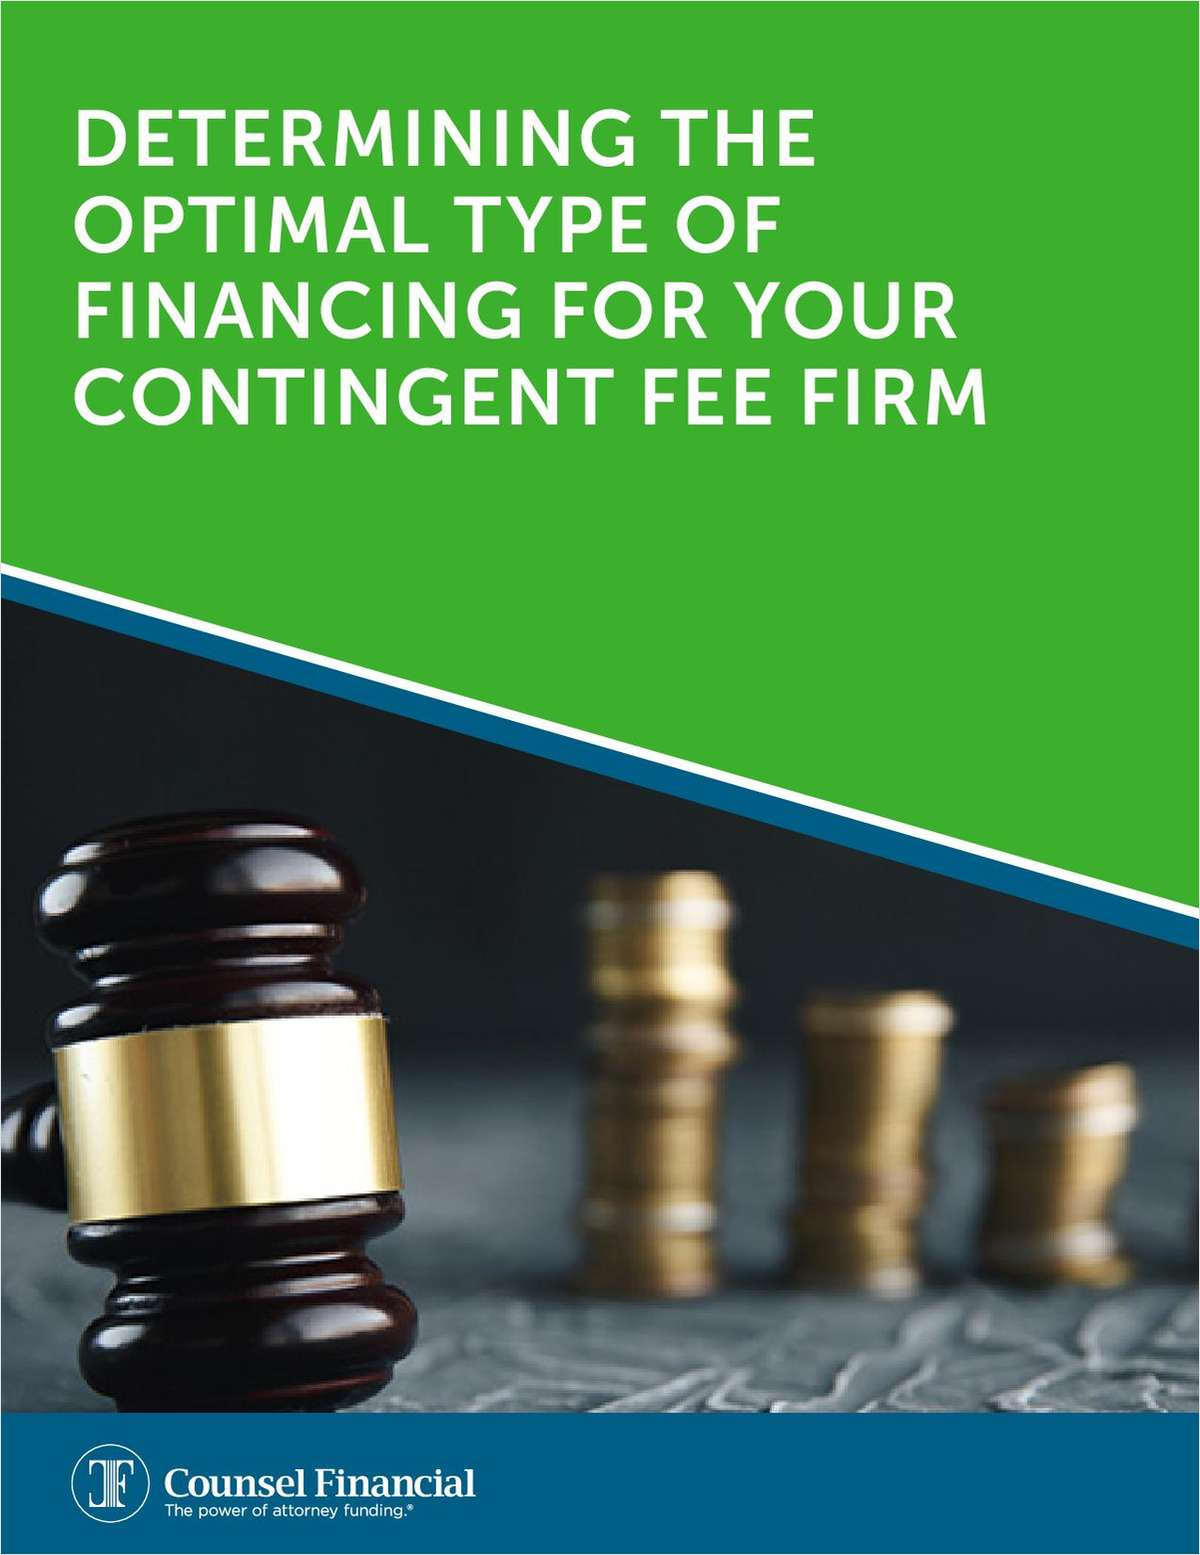 Determining The Optimal Type of Financing for Your Contingent Fee Firm